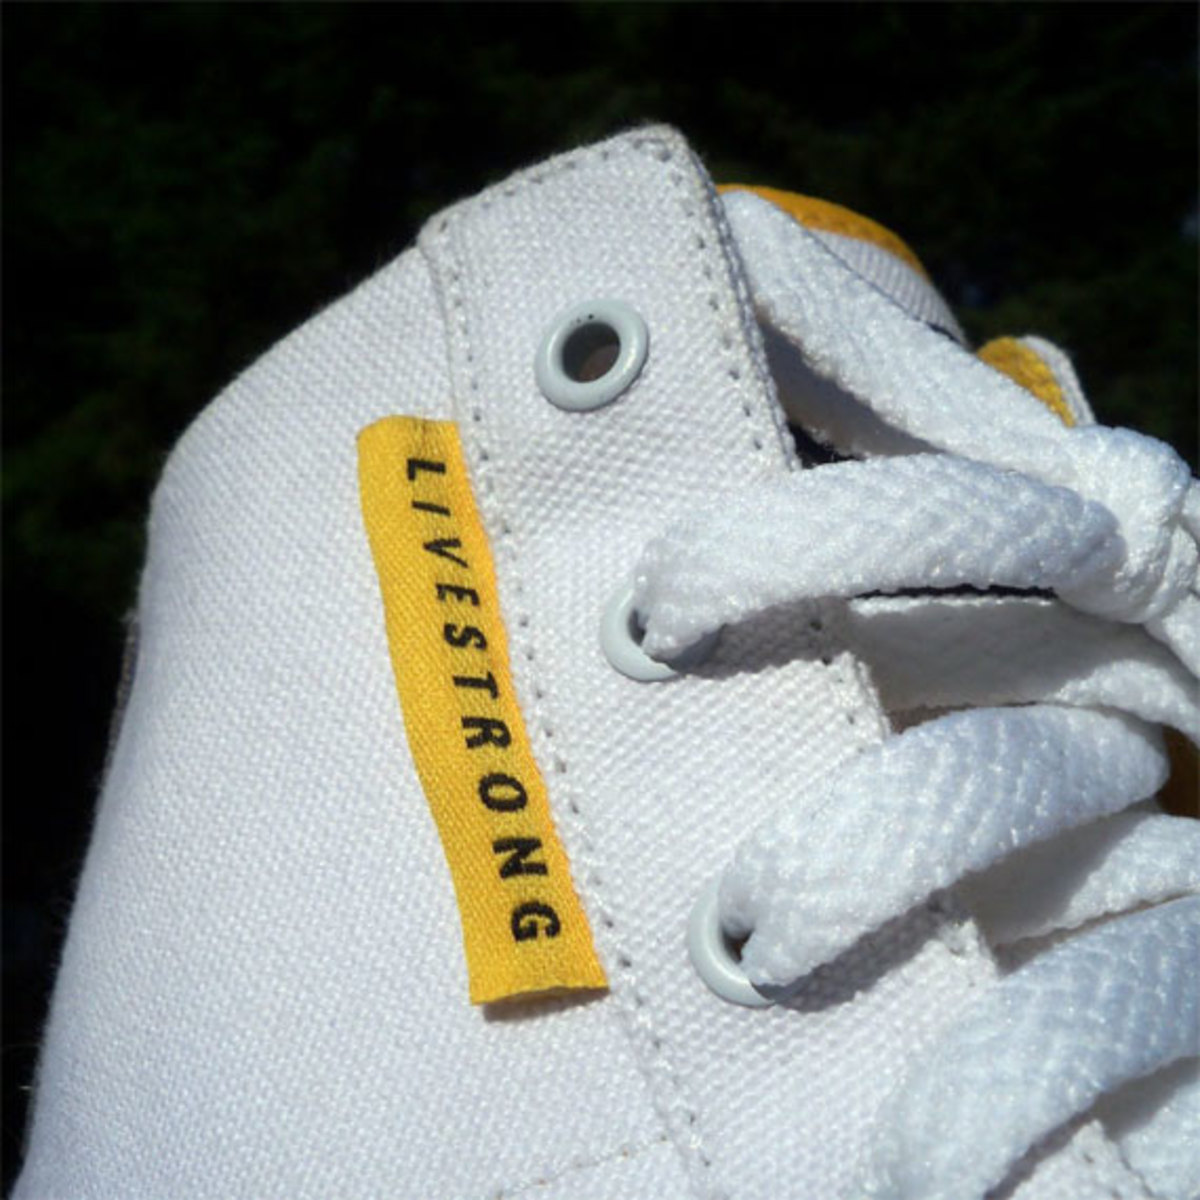 nike-sweet-classic-high-livestrong-promo-03